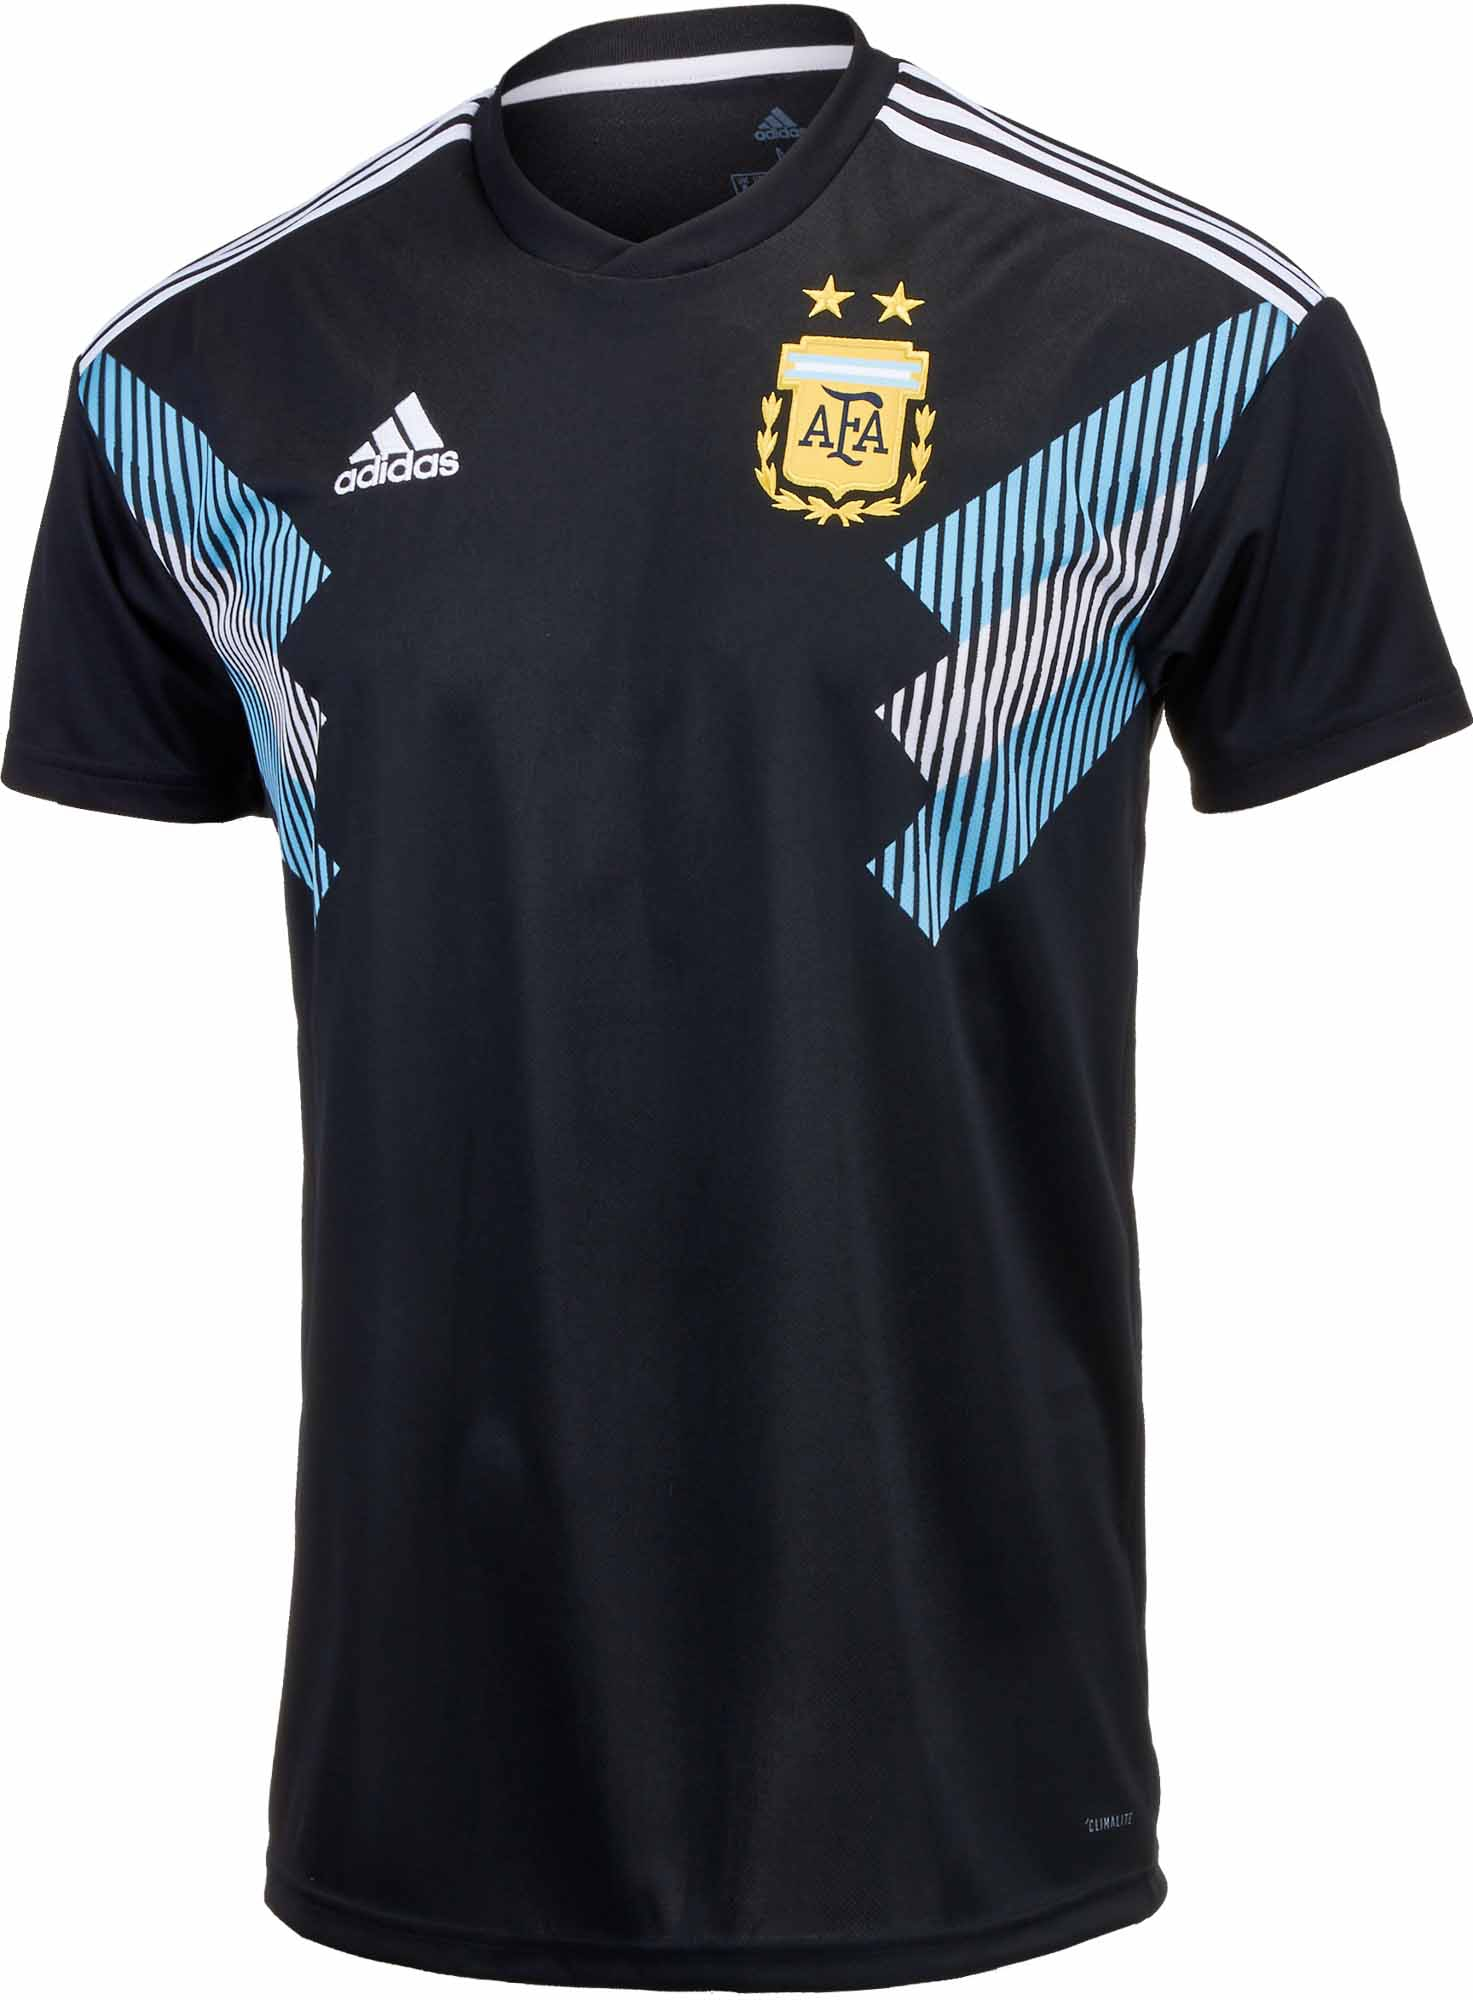 09c6f2eeb Jersey - Argentina Away Kit World Cu (end 2 4 2021 12 00 AM)